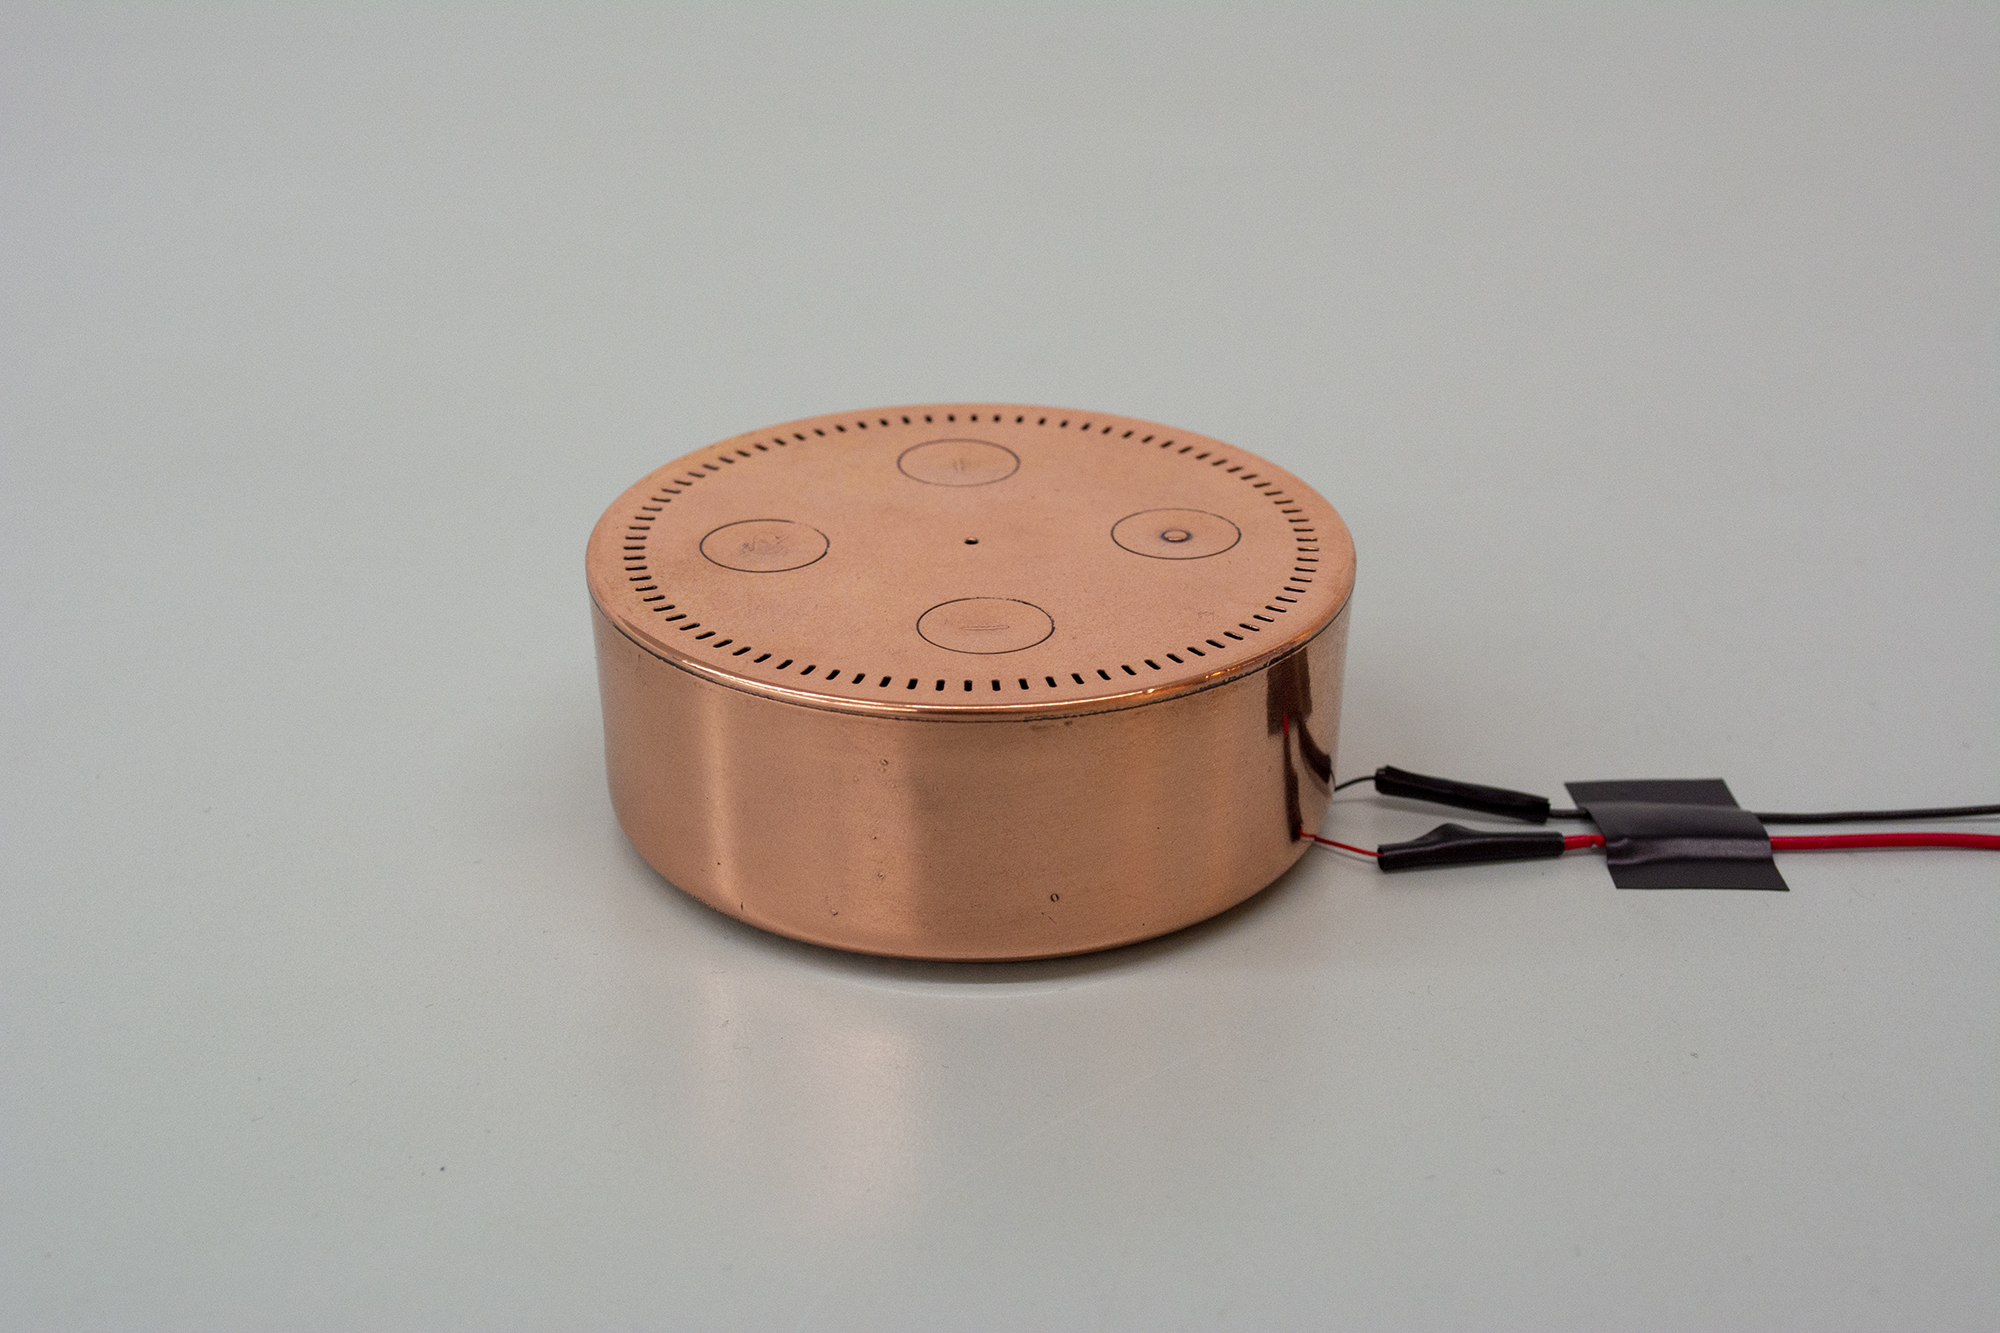 Amanda Turner Pohan  I'm best at answering questions  2019 Electroplated bronze Amazon® Alexa Echo Dot, vibration sensor, Arduino, Max/MSP software, laptop, speaker, locking steel electronics box 3.25 x 1.5 inches (Alexa Echo Dot), 19 x 14 x 13 inches (electronics box)